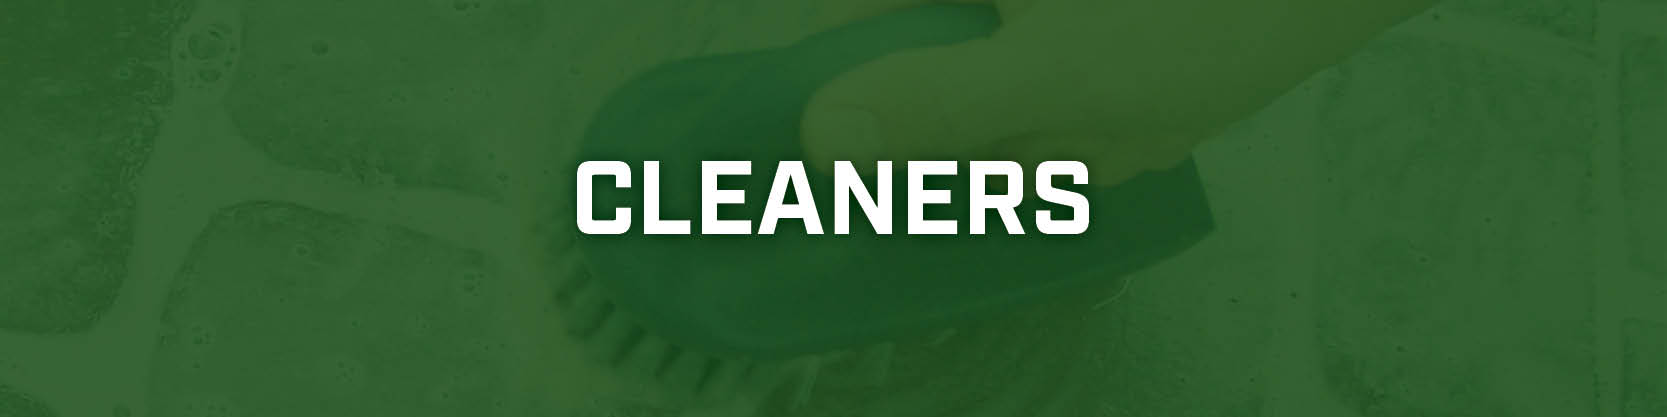 ProductCategories-Cleaners